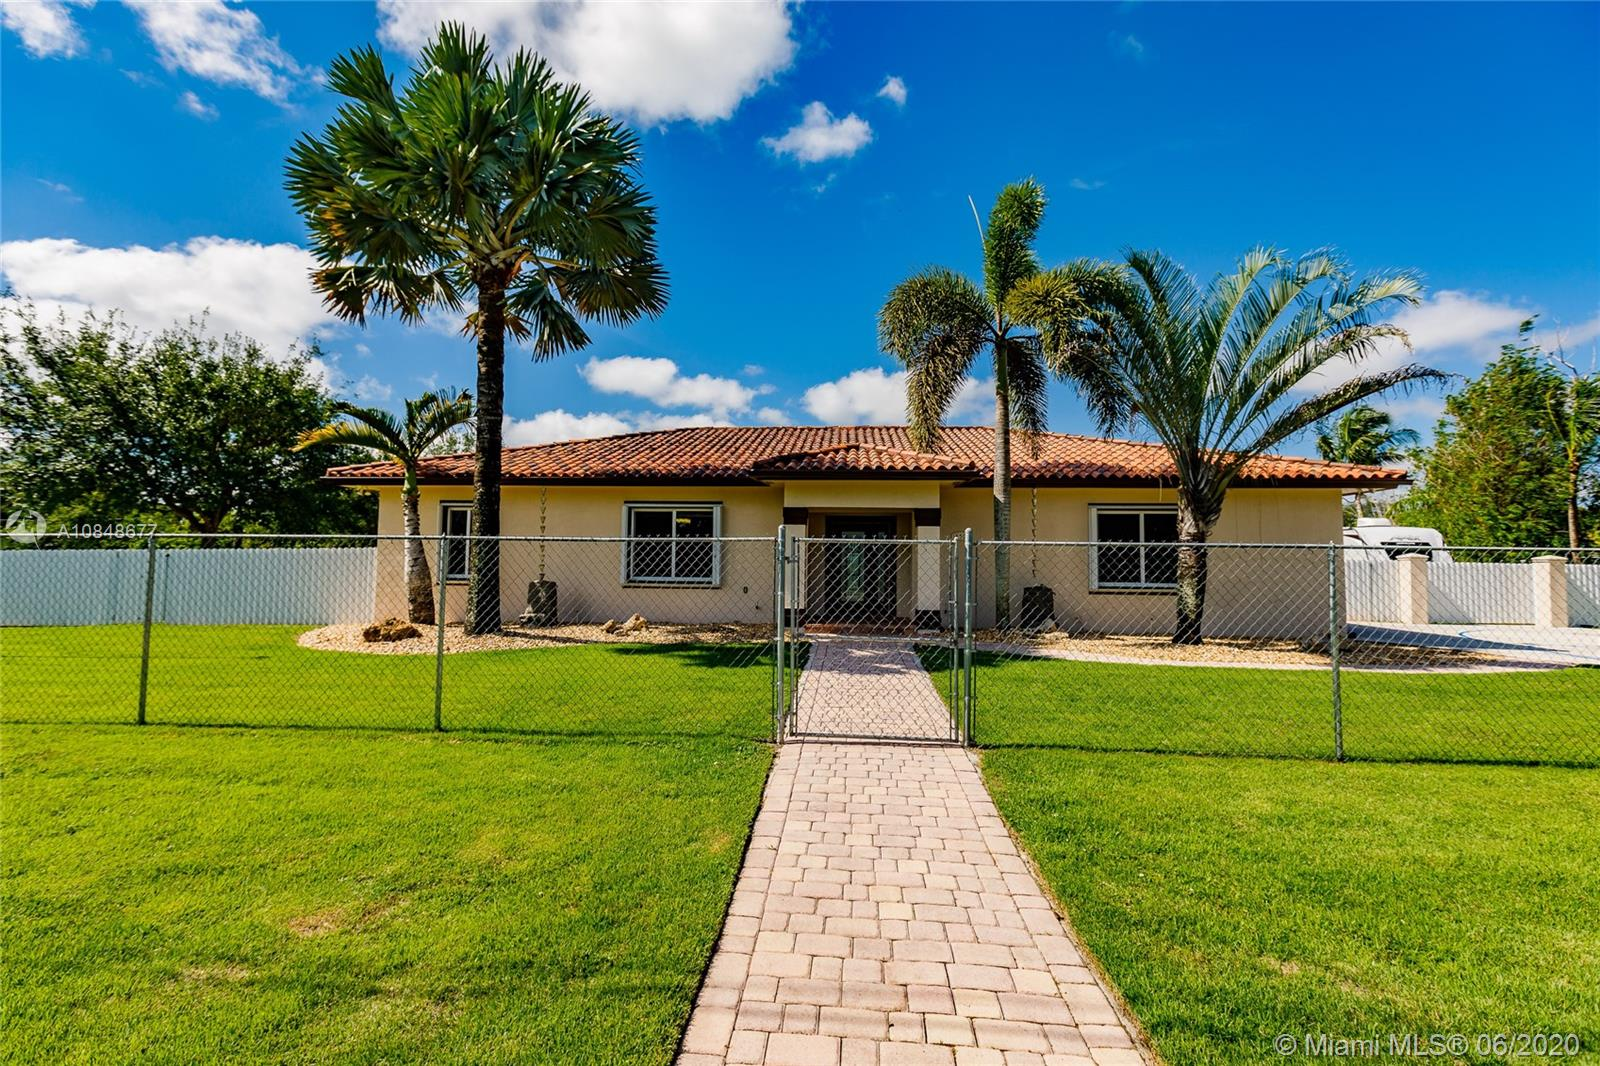 18500 SW 266th St, Homestead, FL 33031 - Homestead, FL real estate listing